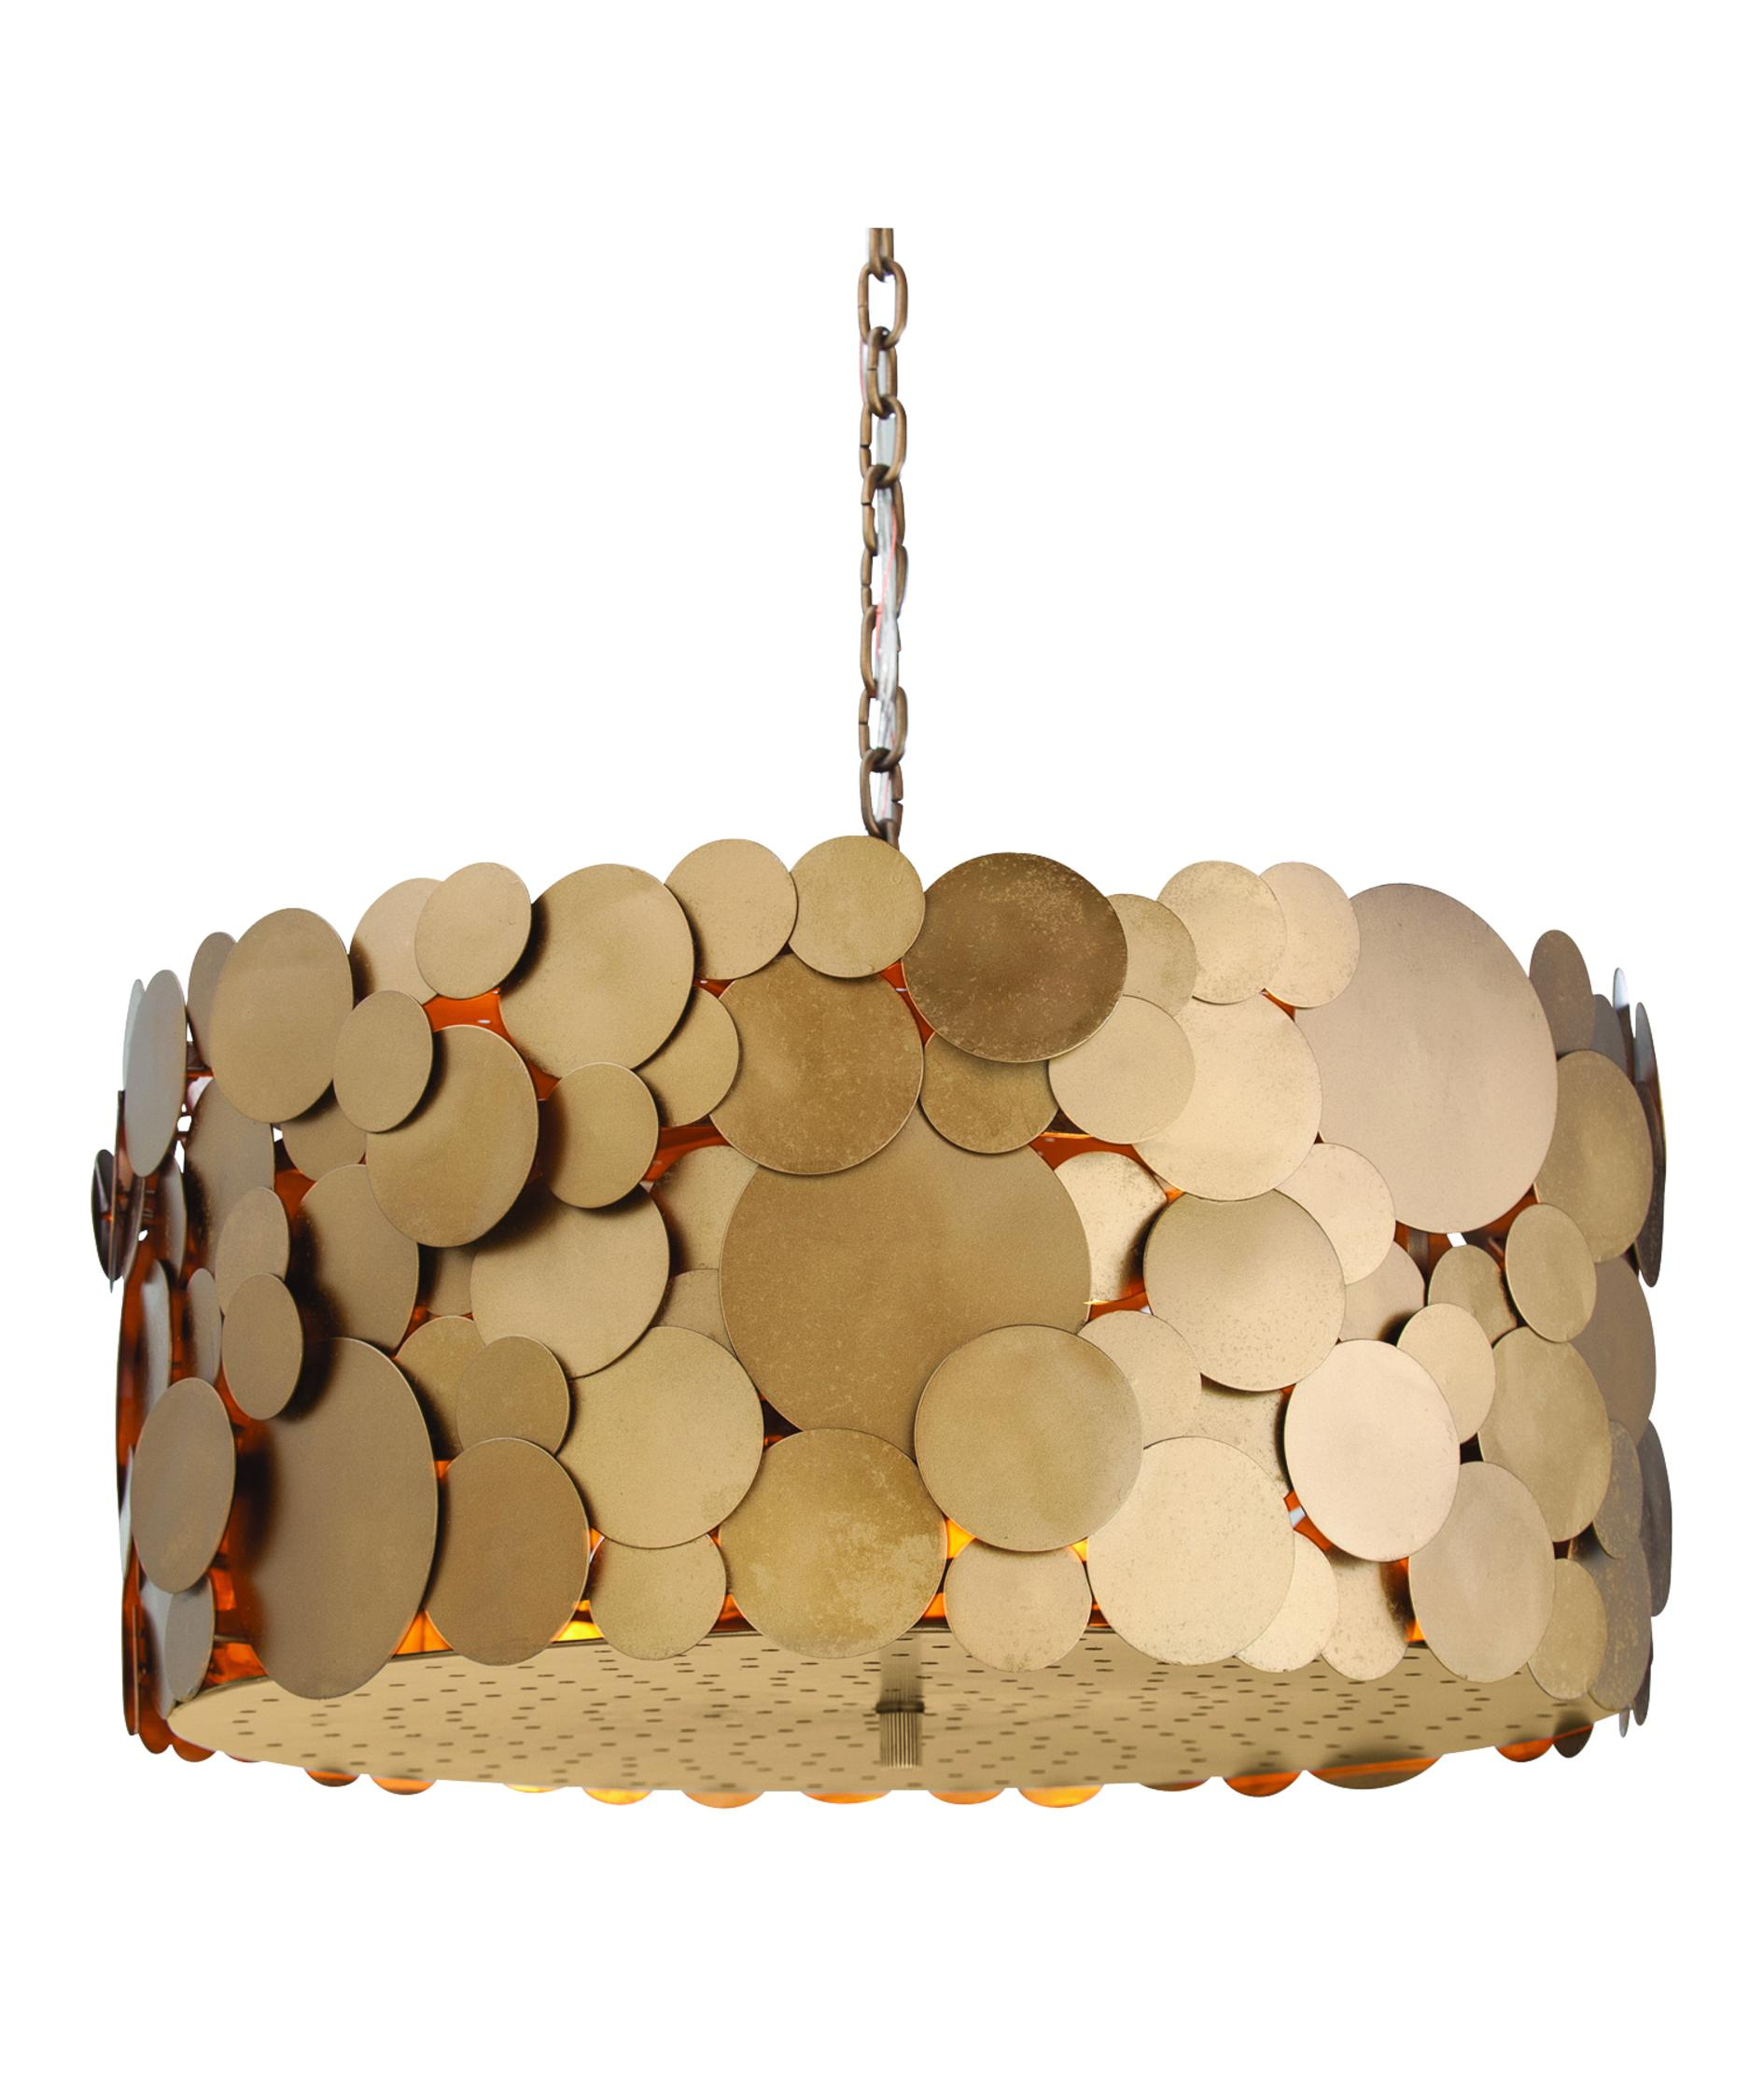 The Best Luxury Chandeliers for Your Living Room Luxury Chandeliers The Best Luxury Chandeliers for Your Living Room The Best Luxury Chandeliers for Your Living Room